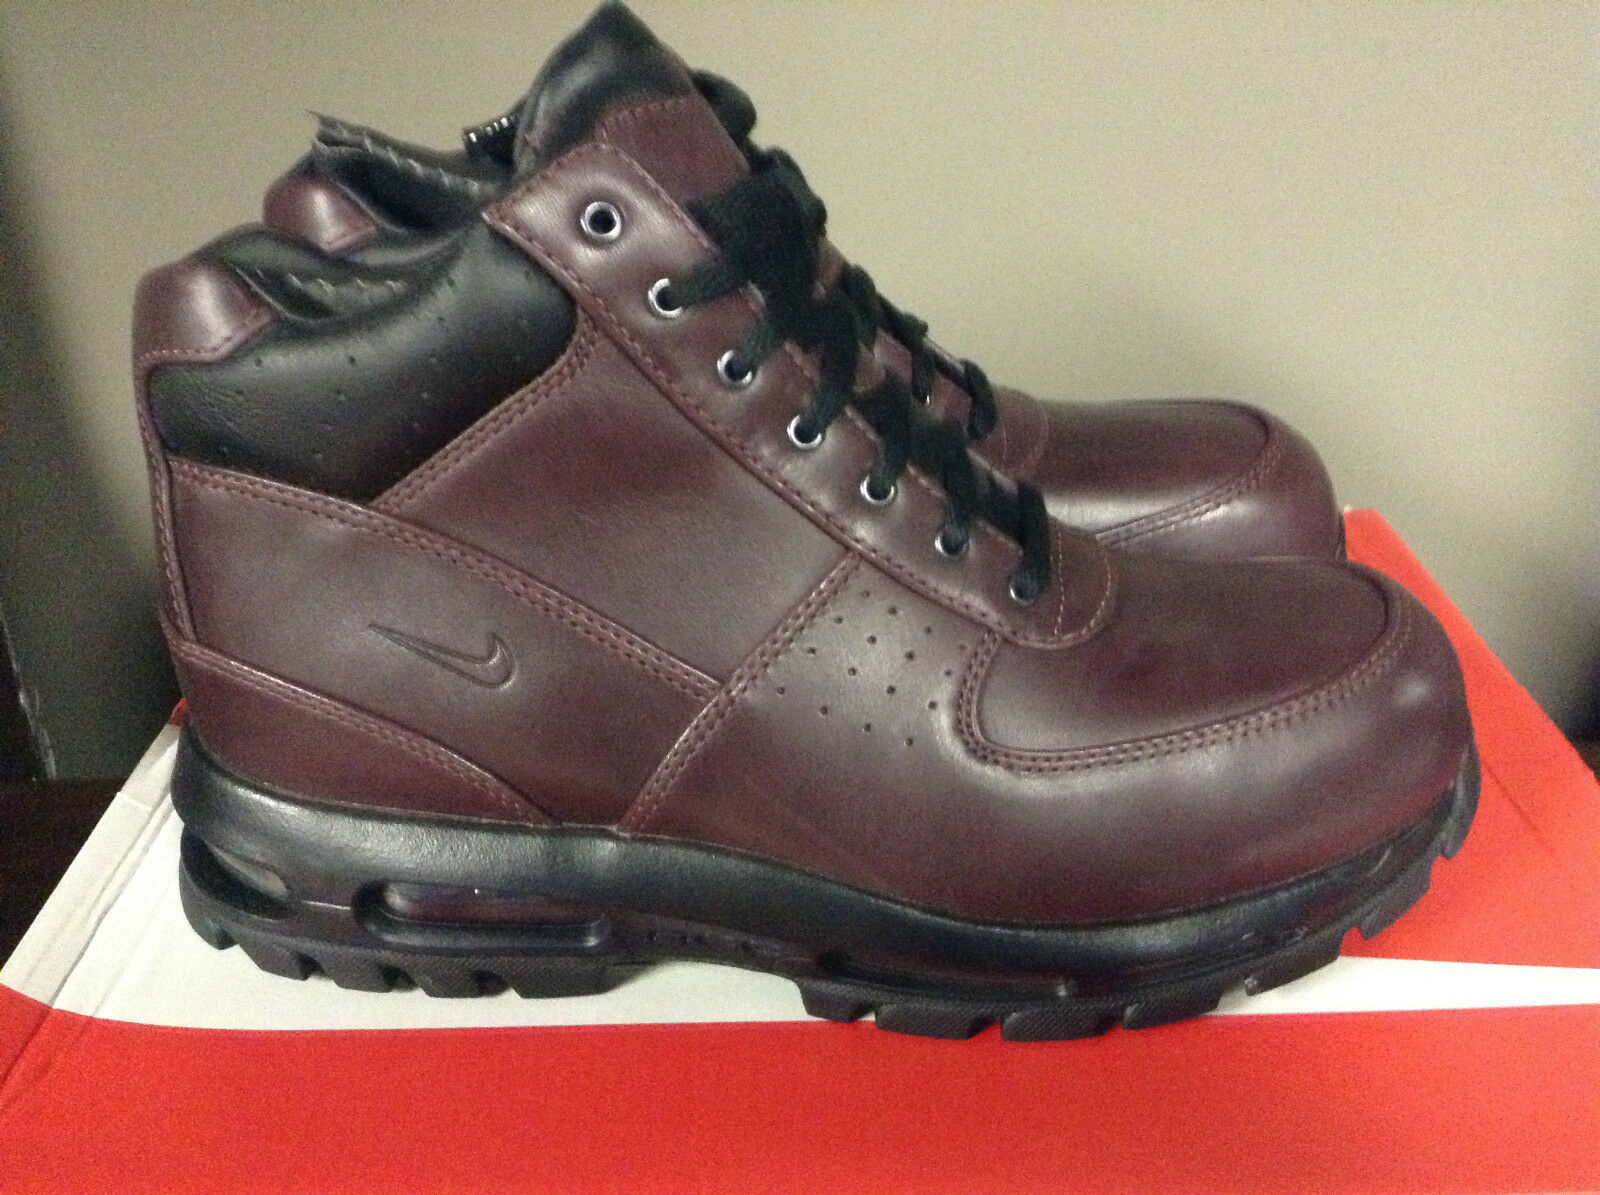 Nike 2016 Air Max Goadome ACG New Mens BootsDeep Burgundy 865031-601 NEW